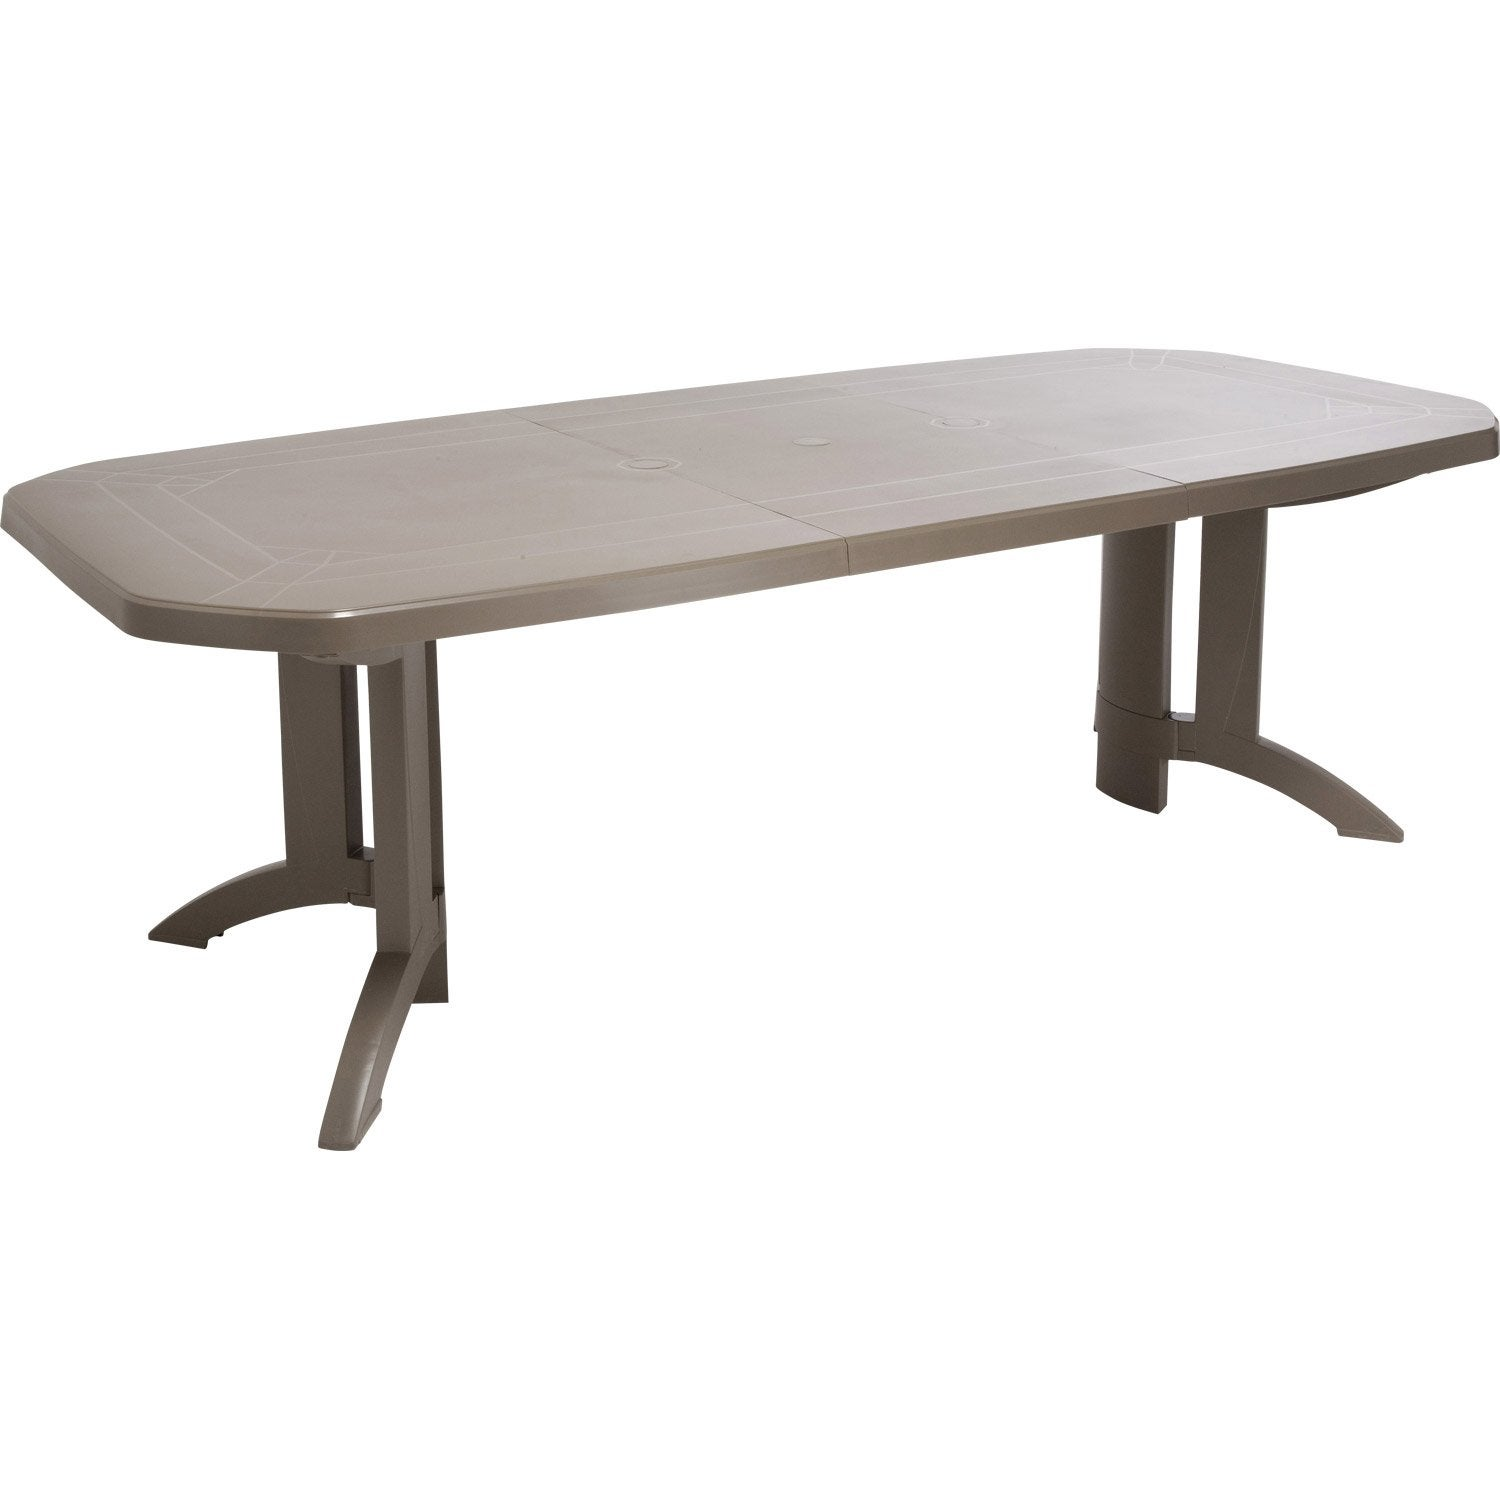 Table De Jardin Grosfillex V Ga Rectangulaire Taupe 10 Personnes Leroy Merlin